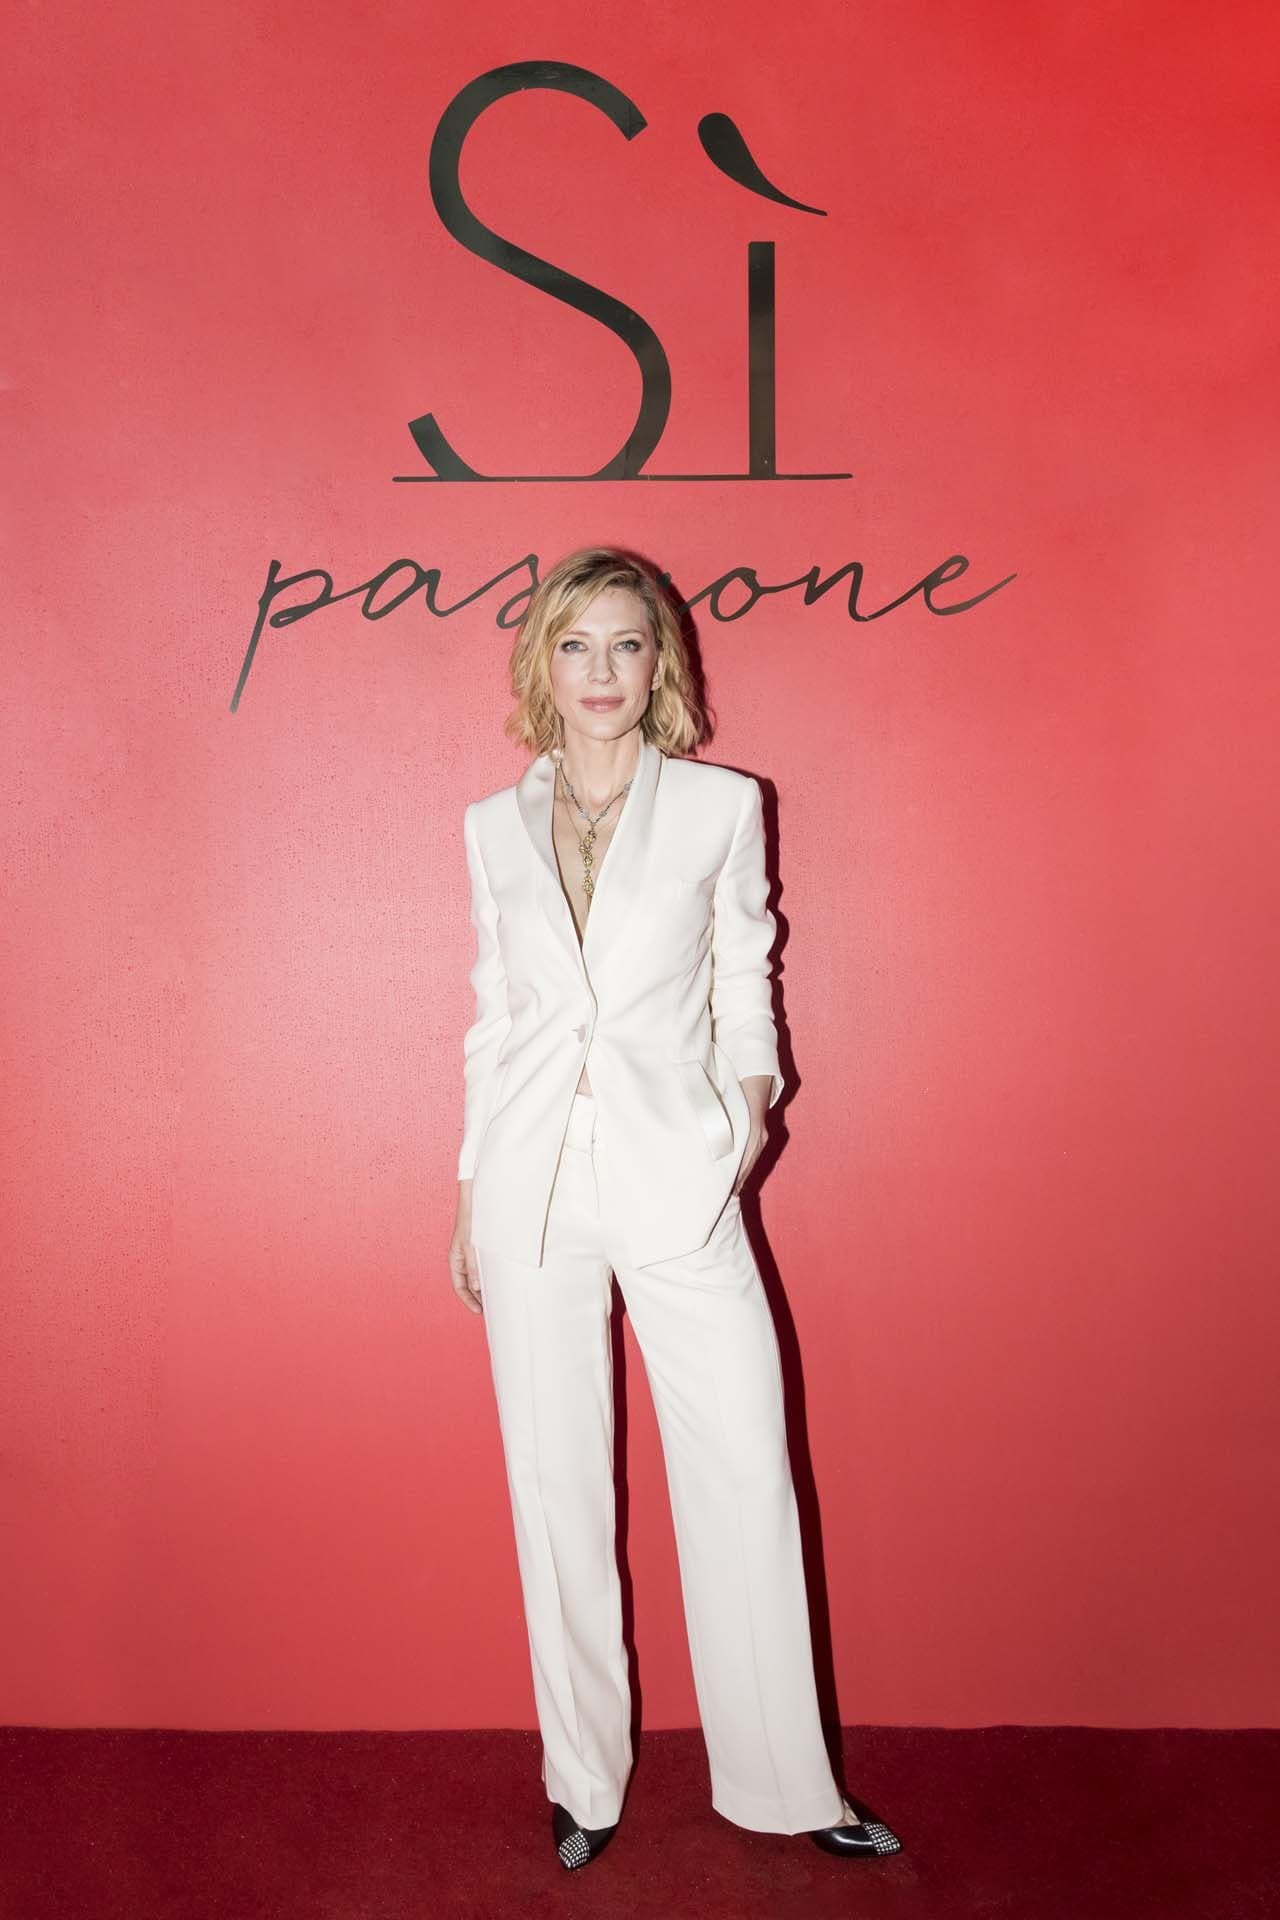 Inside the launch of Giorgio Armani Sì Passione with Cate Blanchett